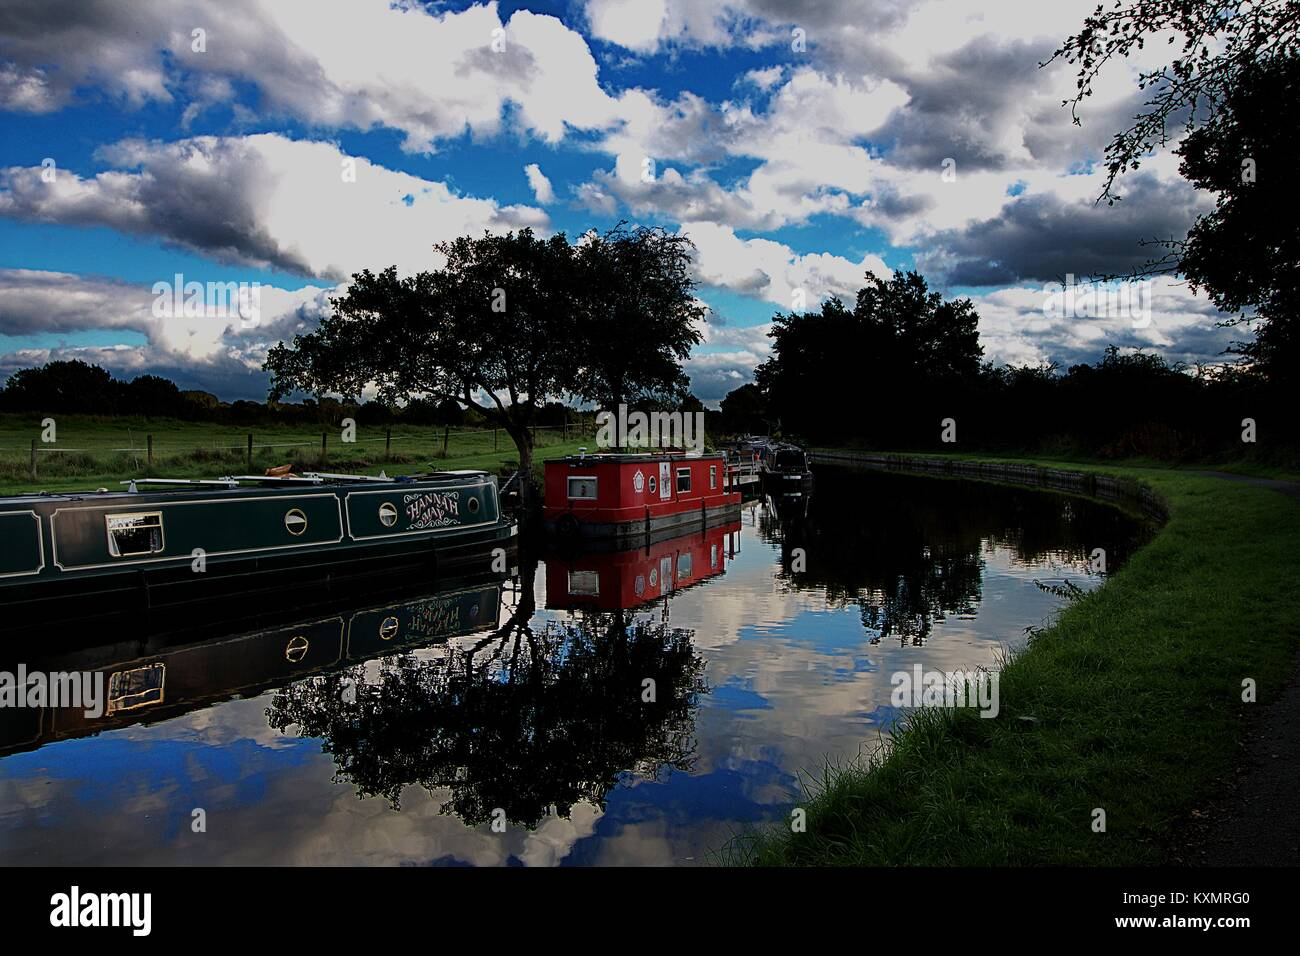 Image from the canal towpath on the Leeds to Liverpool Canal. Lancashire. - Stock Image